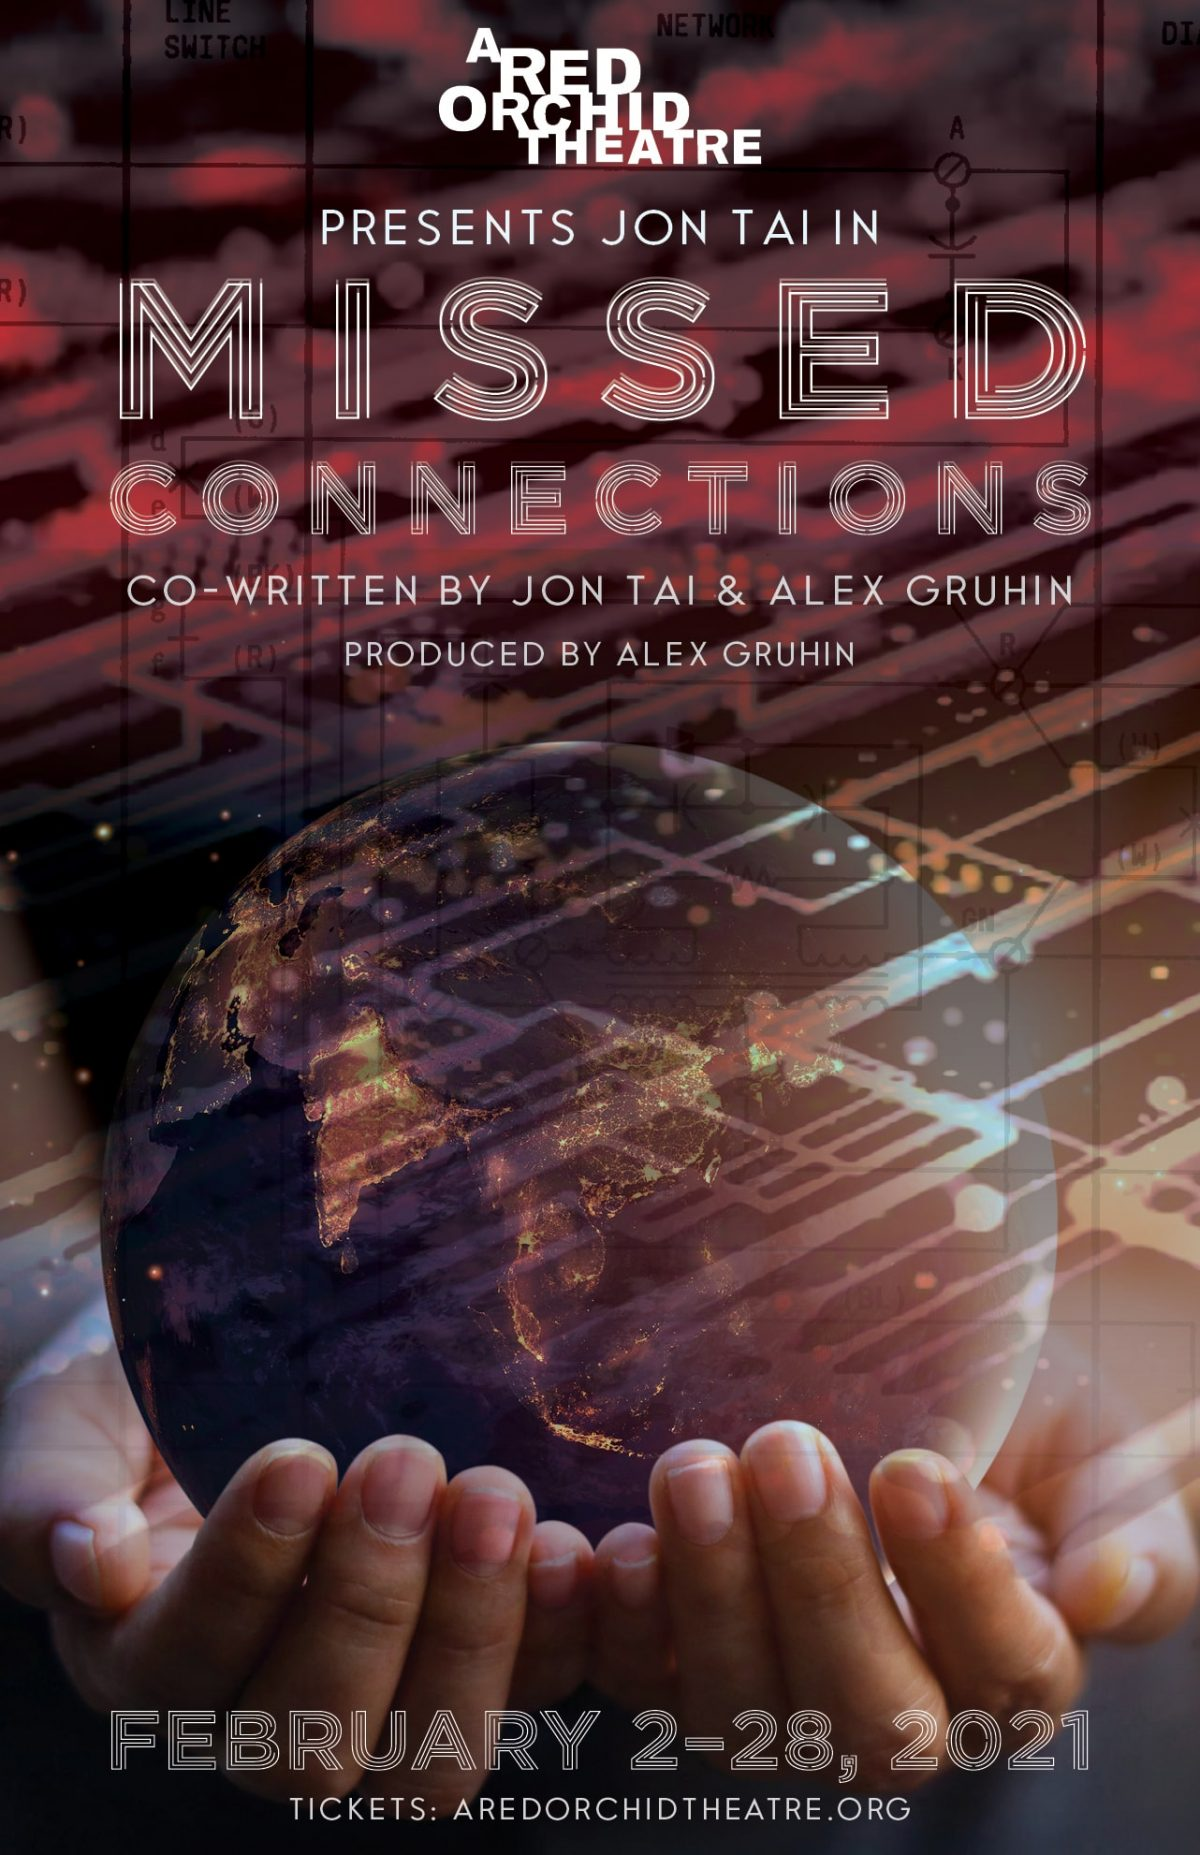 Missed Connections promo poster.